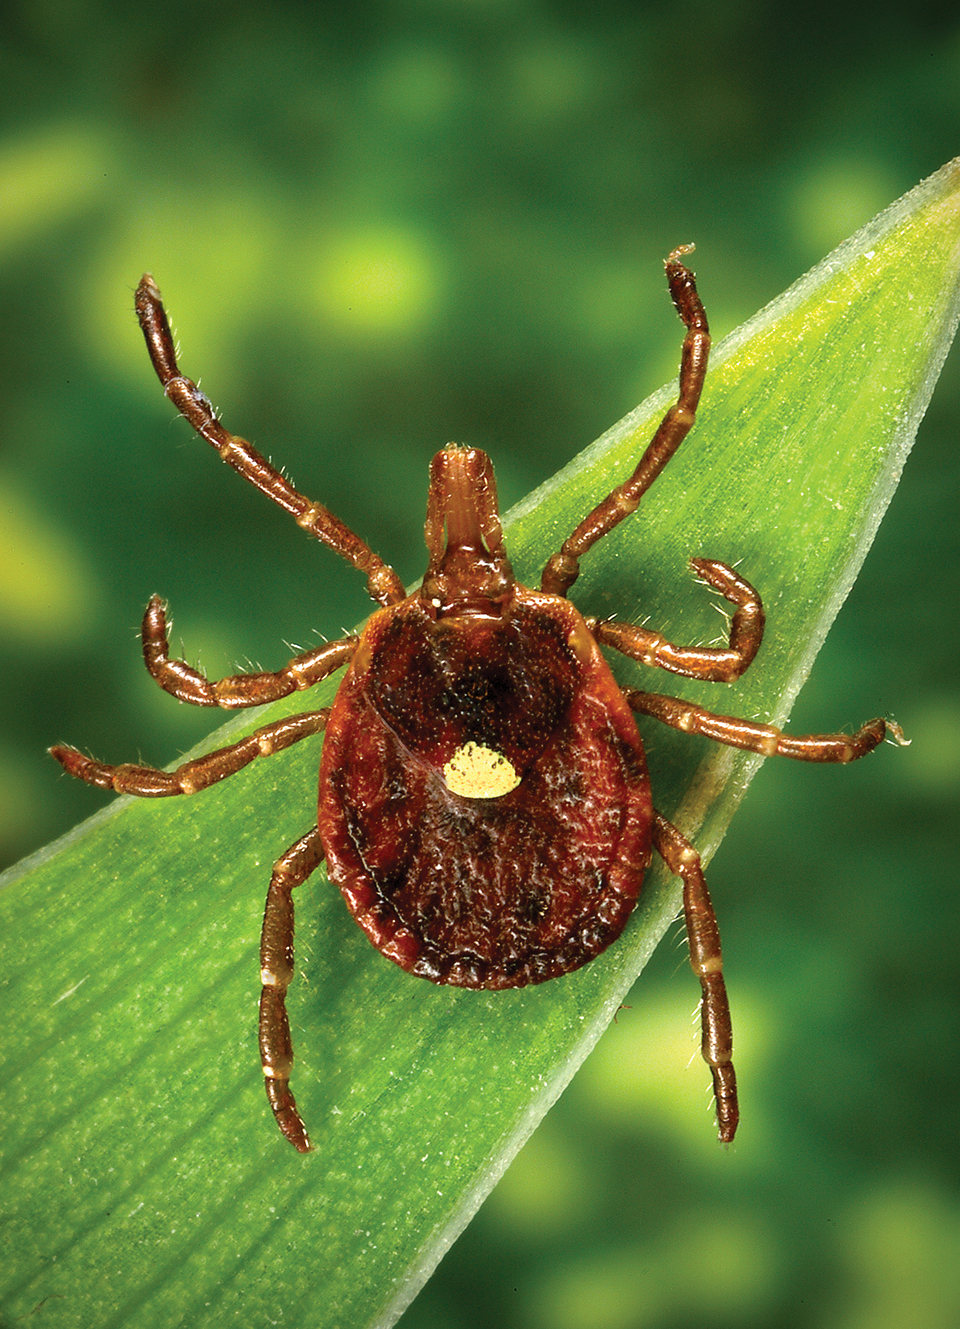 The adult lone star tick is common in Missouri and uses mammals and birds as hosts. Whitetail deer are its preferred host.(Photo by James Gathany, Centers for Disease Control and Prevention.)